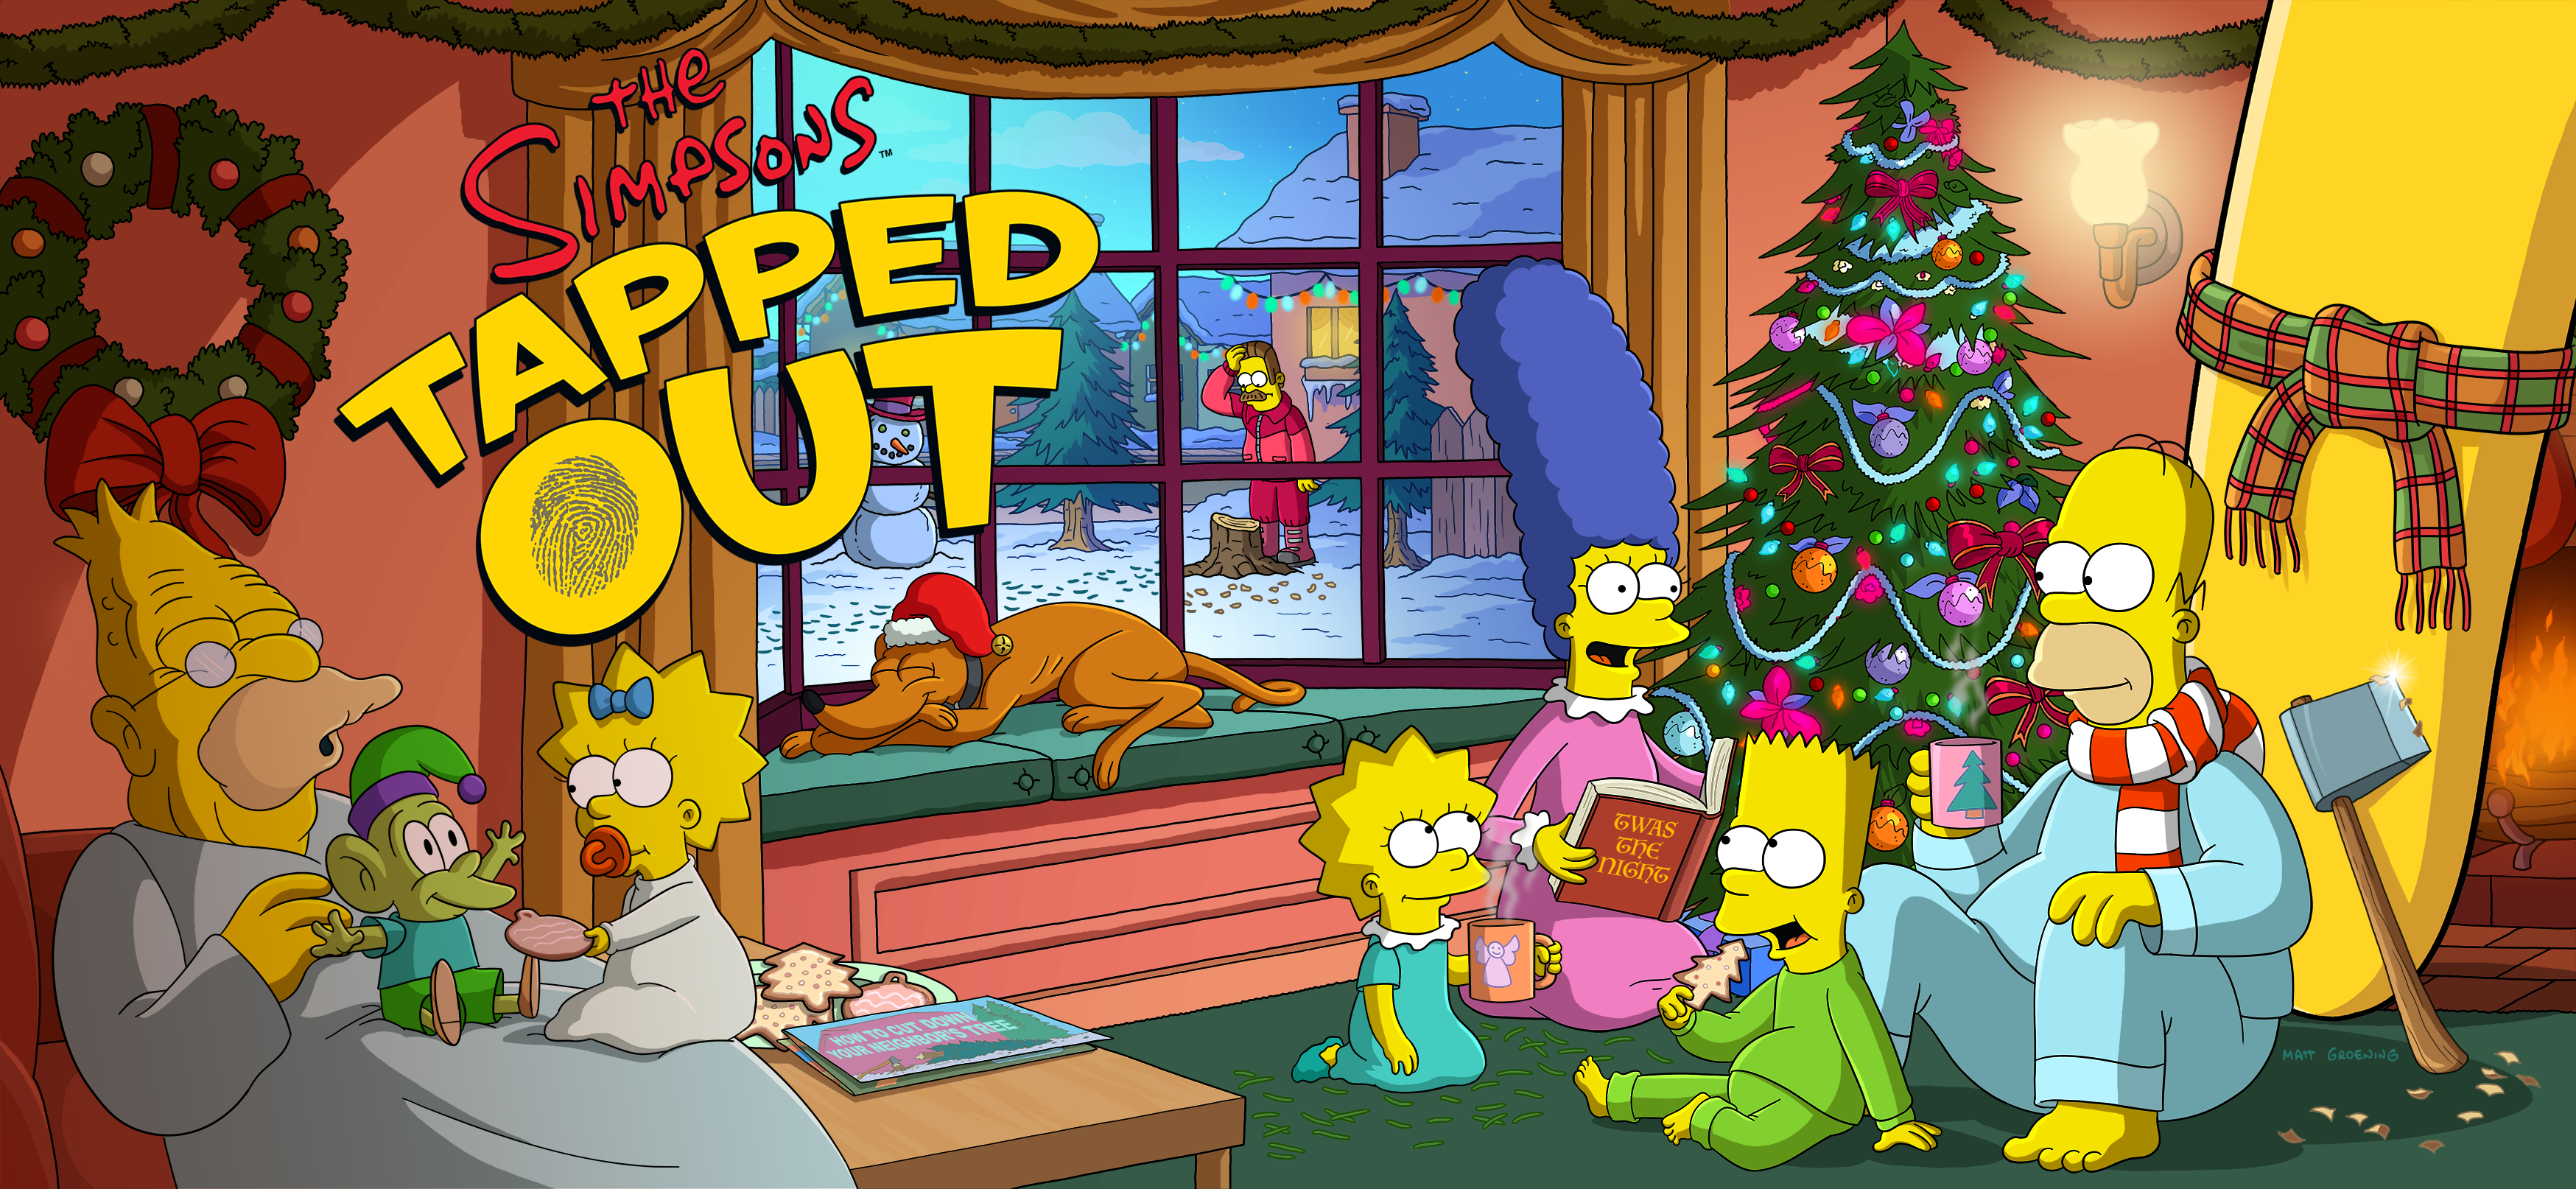 A Simpsons Christmas Special Splash Screen.png